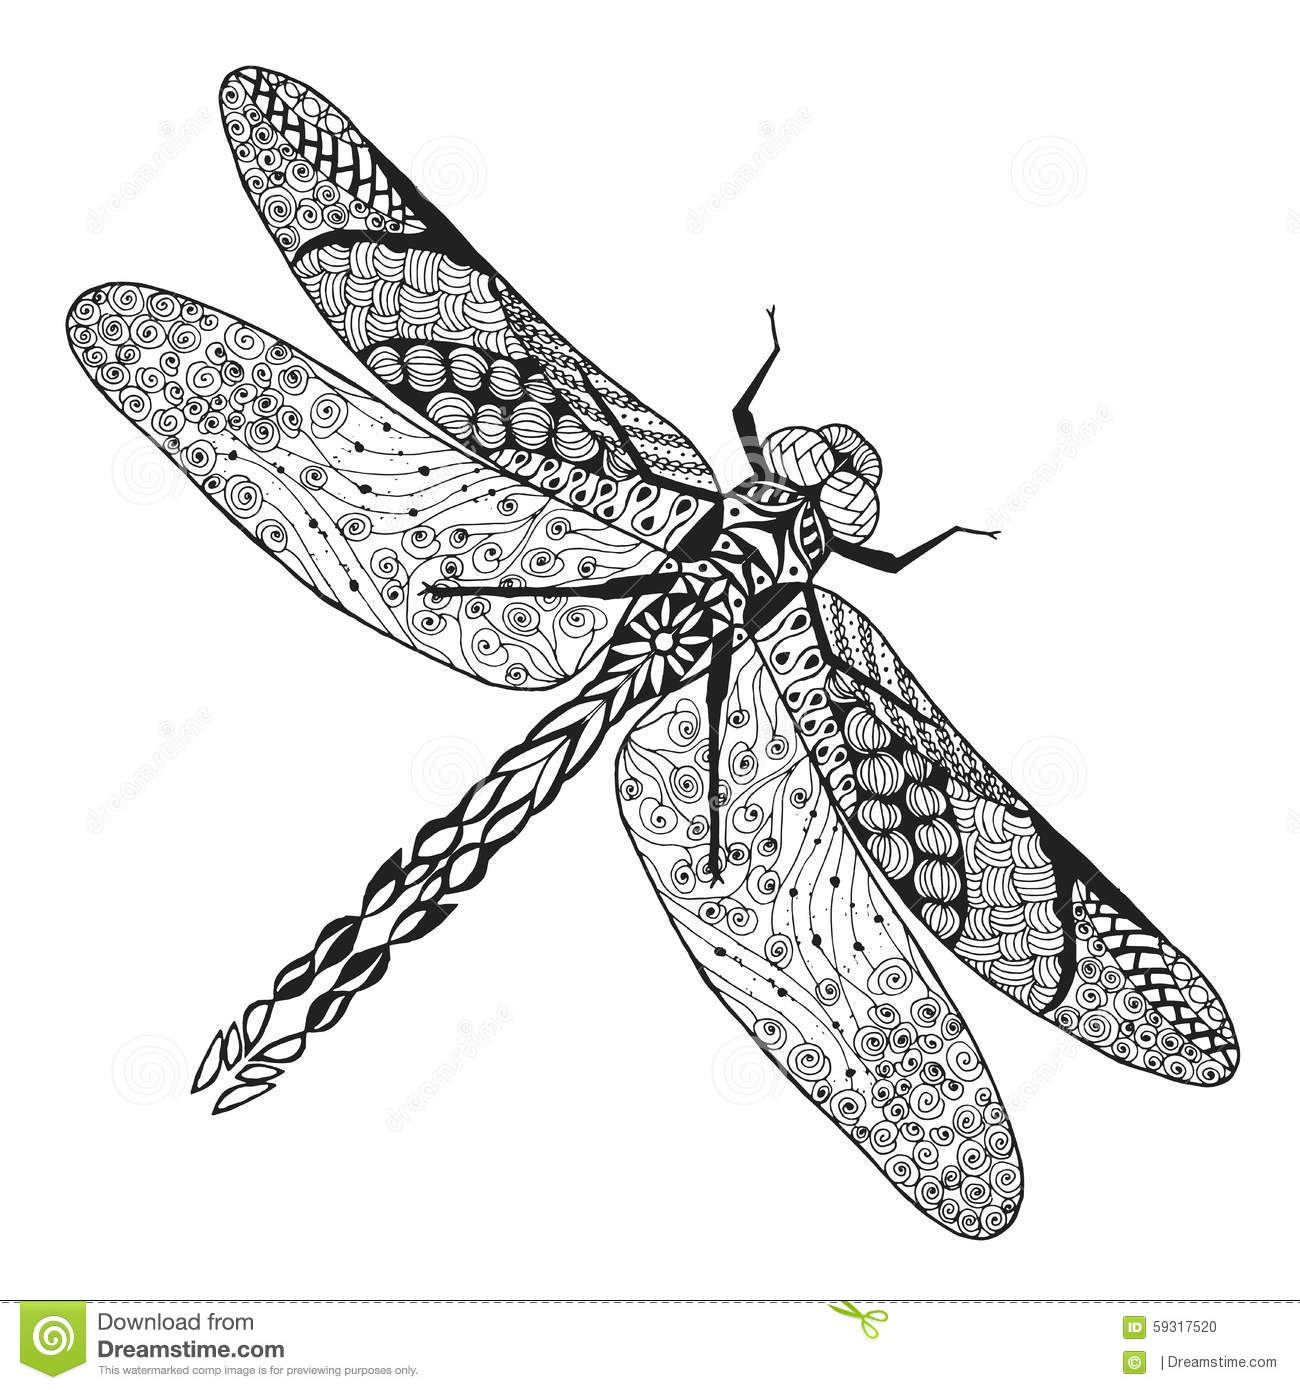 Realistic firefly coloring pages